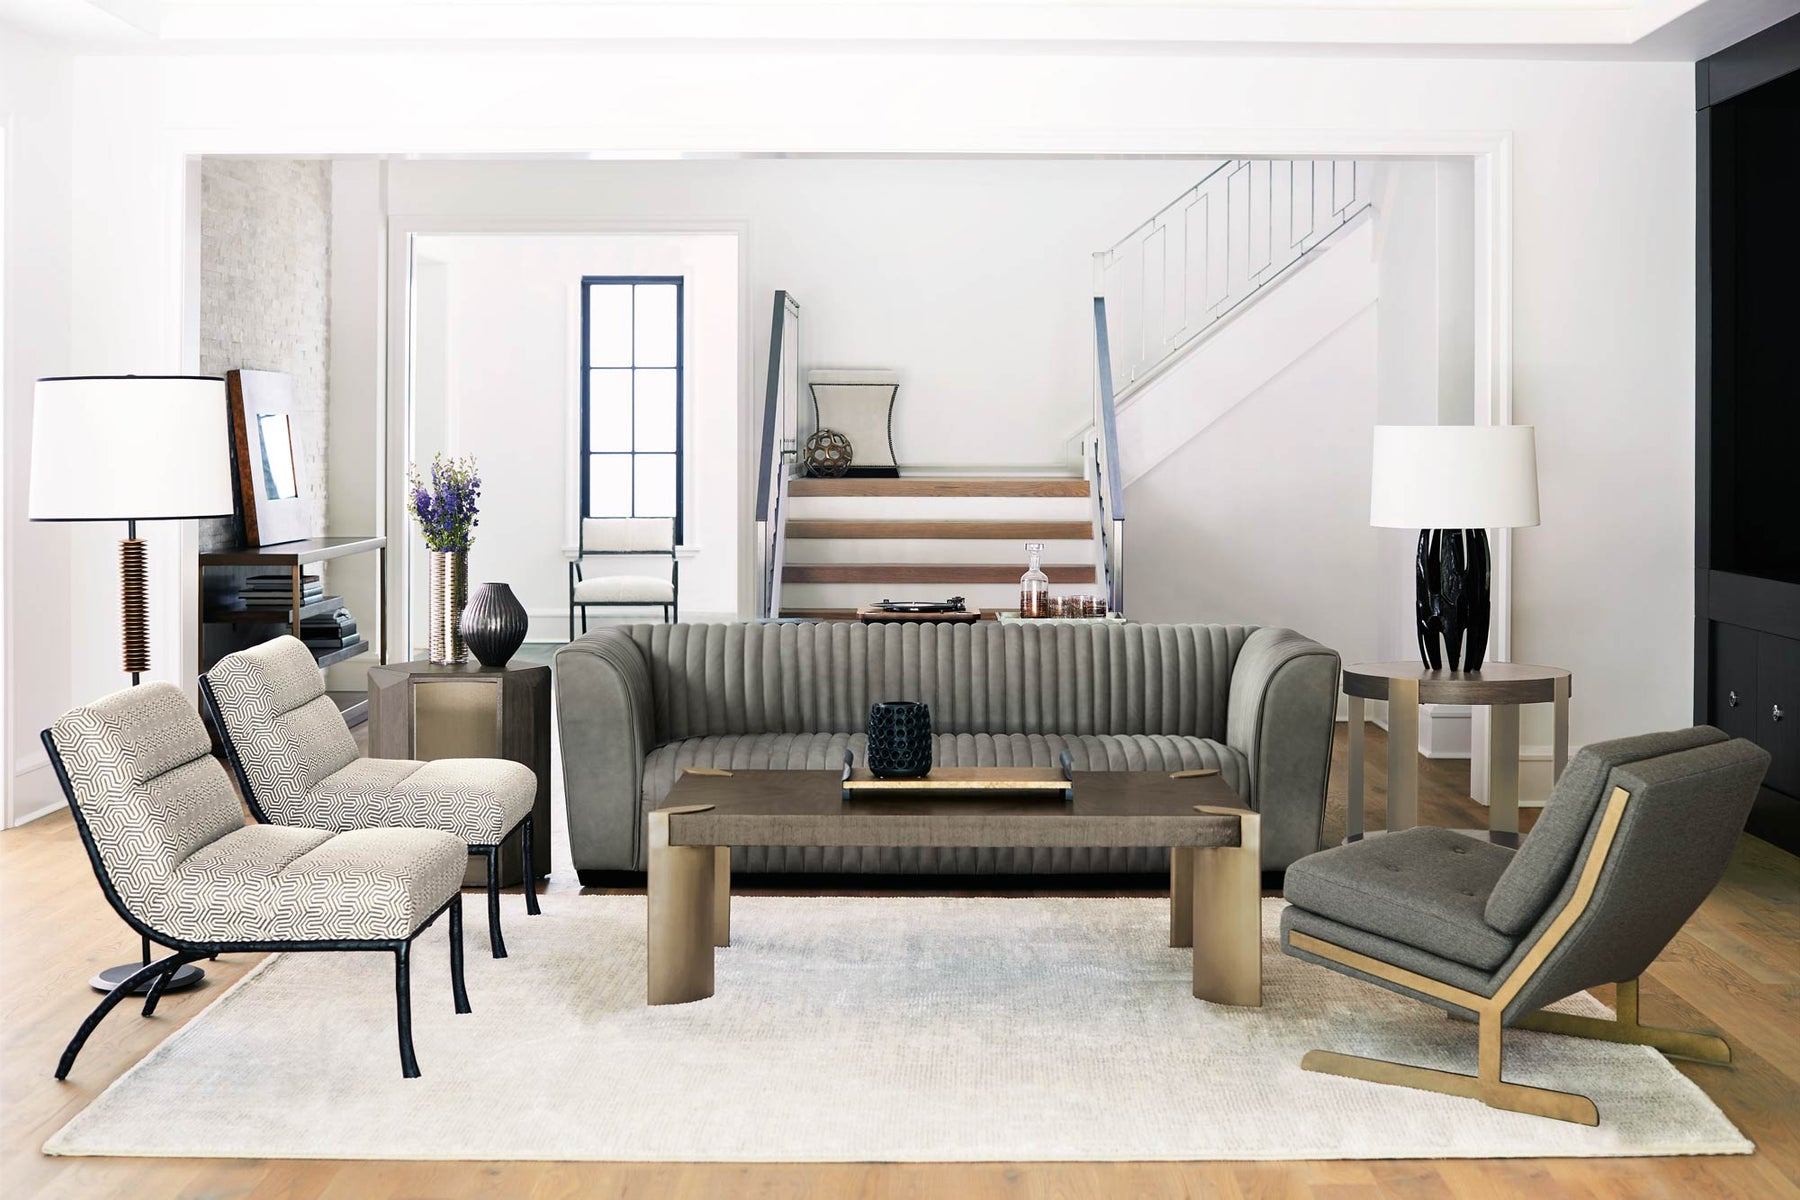 Find The Look You Love: California Contemporary